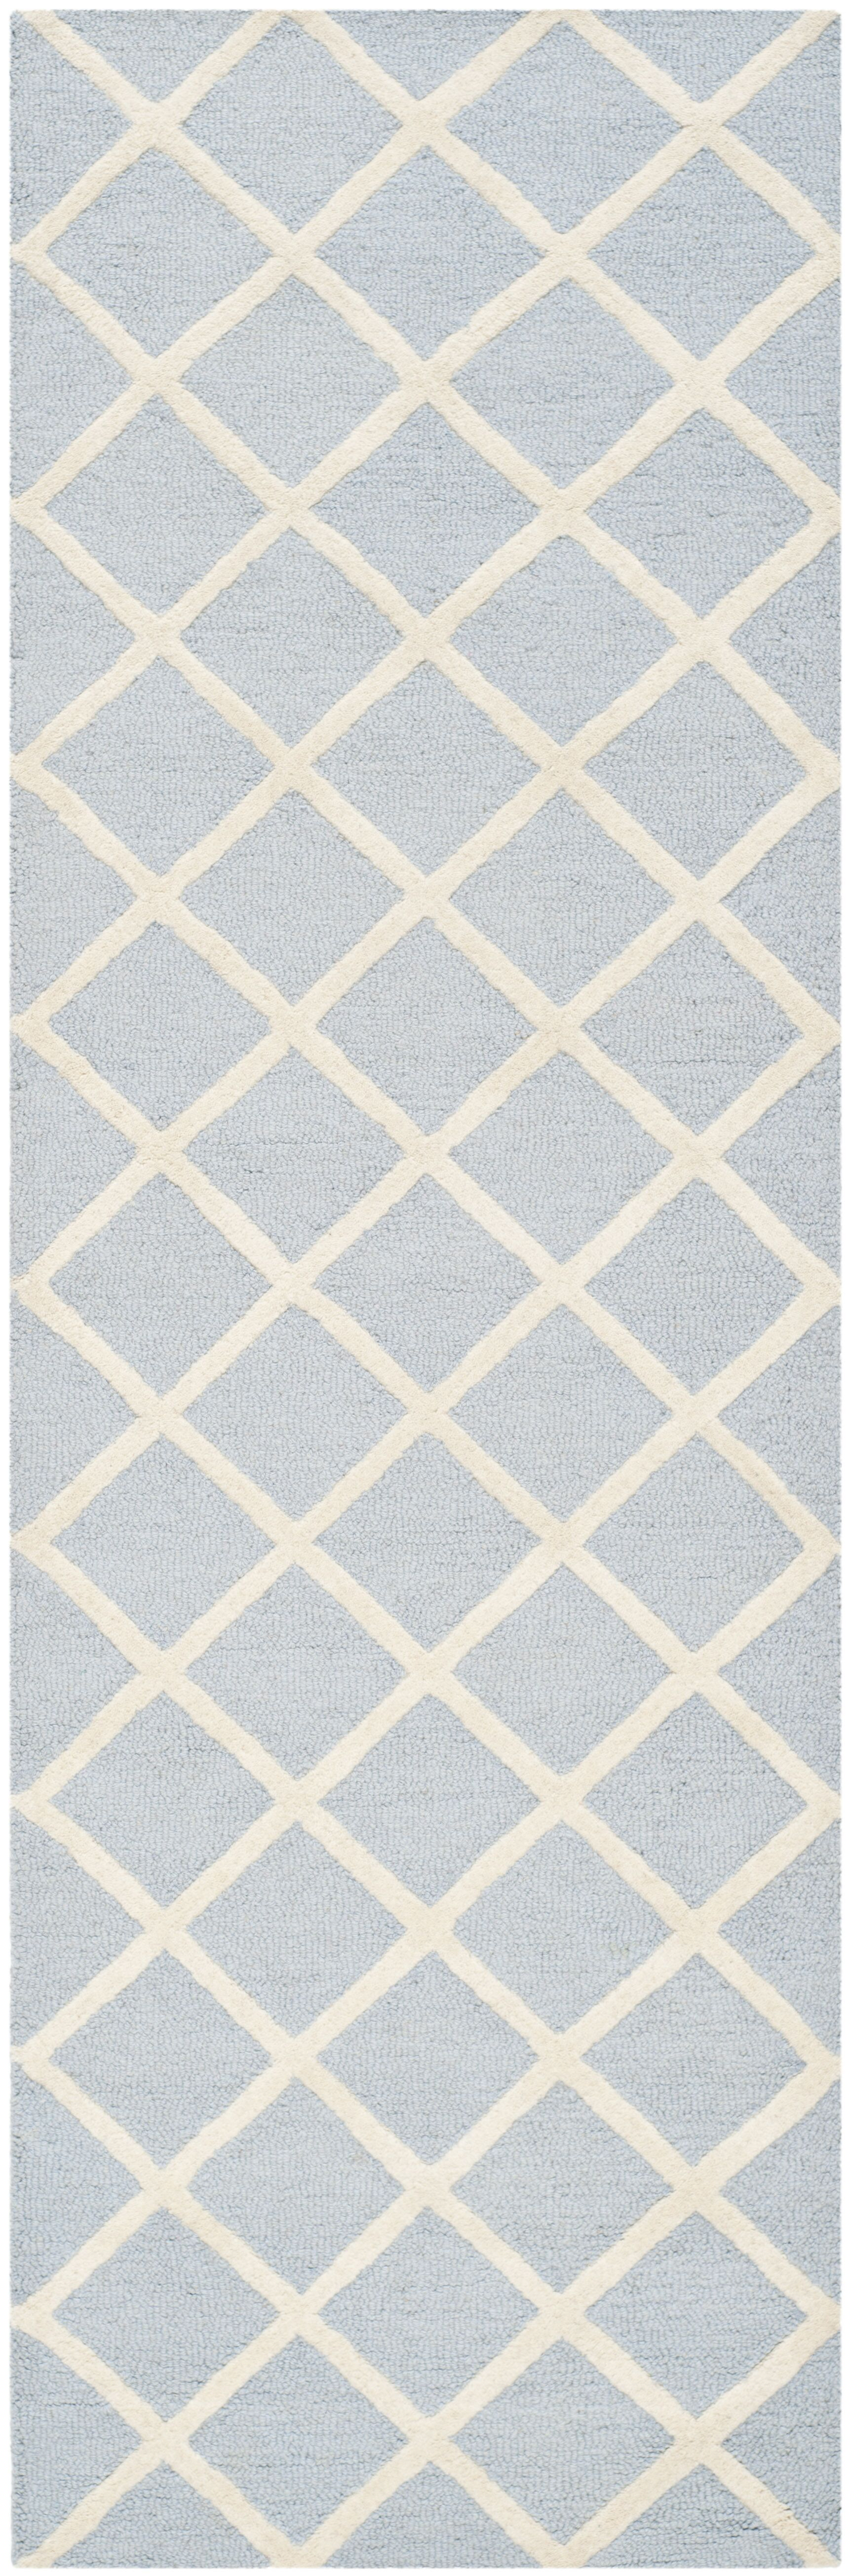 Martins Hand-Tufted Wool Gray/Ivory Area Rug Rug Size: Runner 2'6